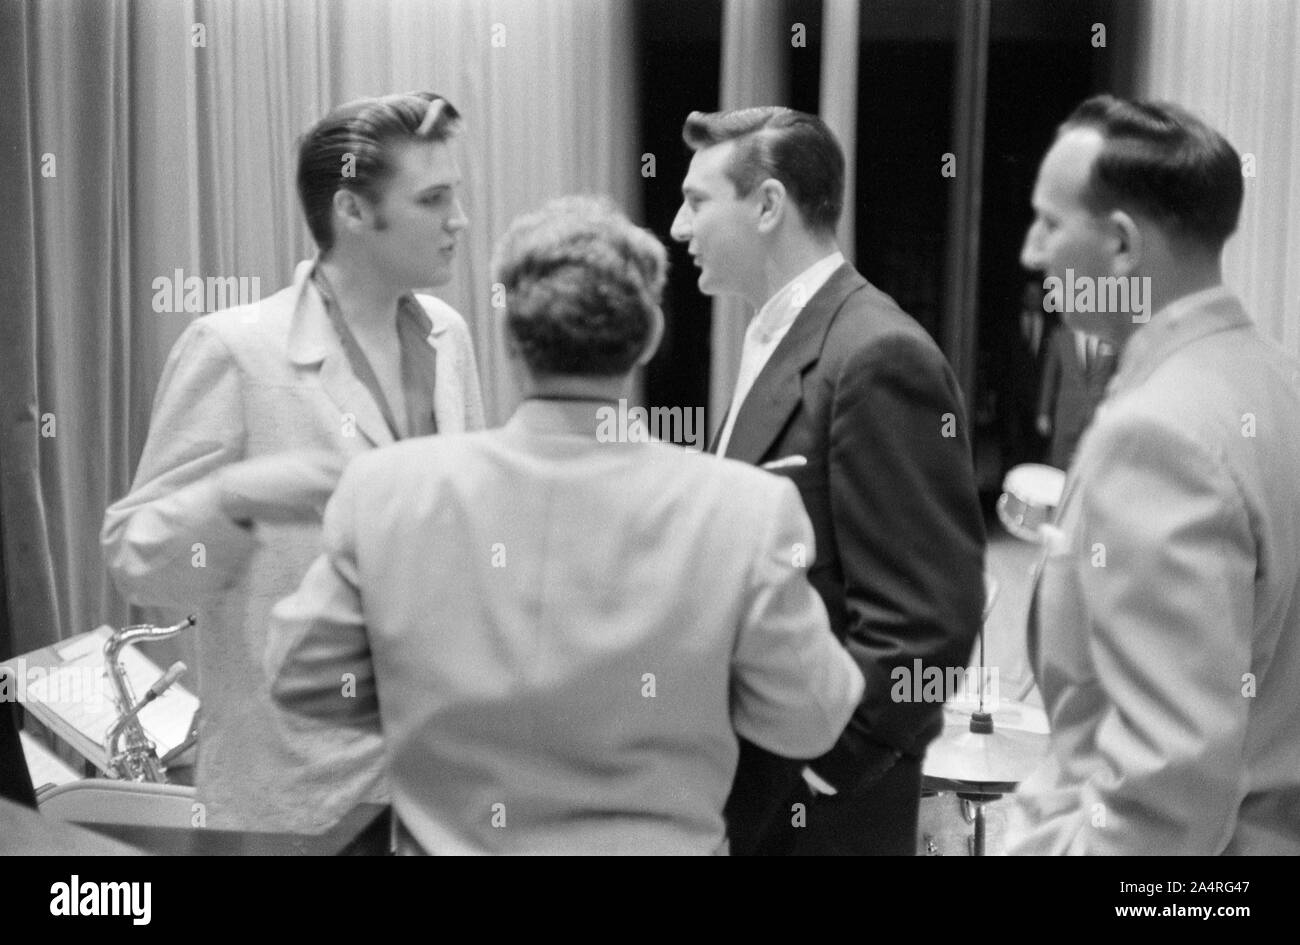 Elvis Presley speaking with several men, probably music industry executives, while waiting for a show to start at the University of Dayton Fieldhouse, May 27, 1956. Stock Photo